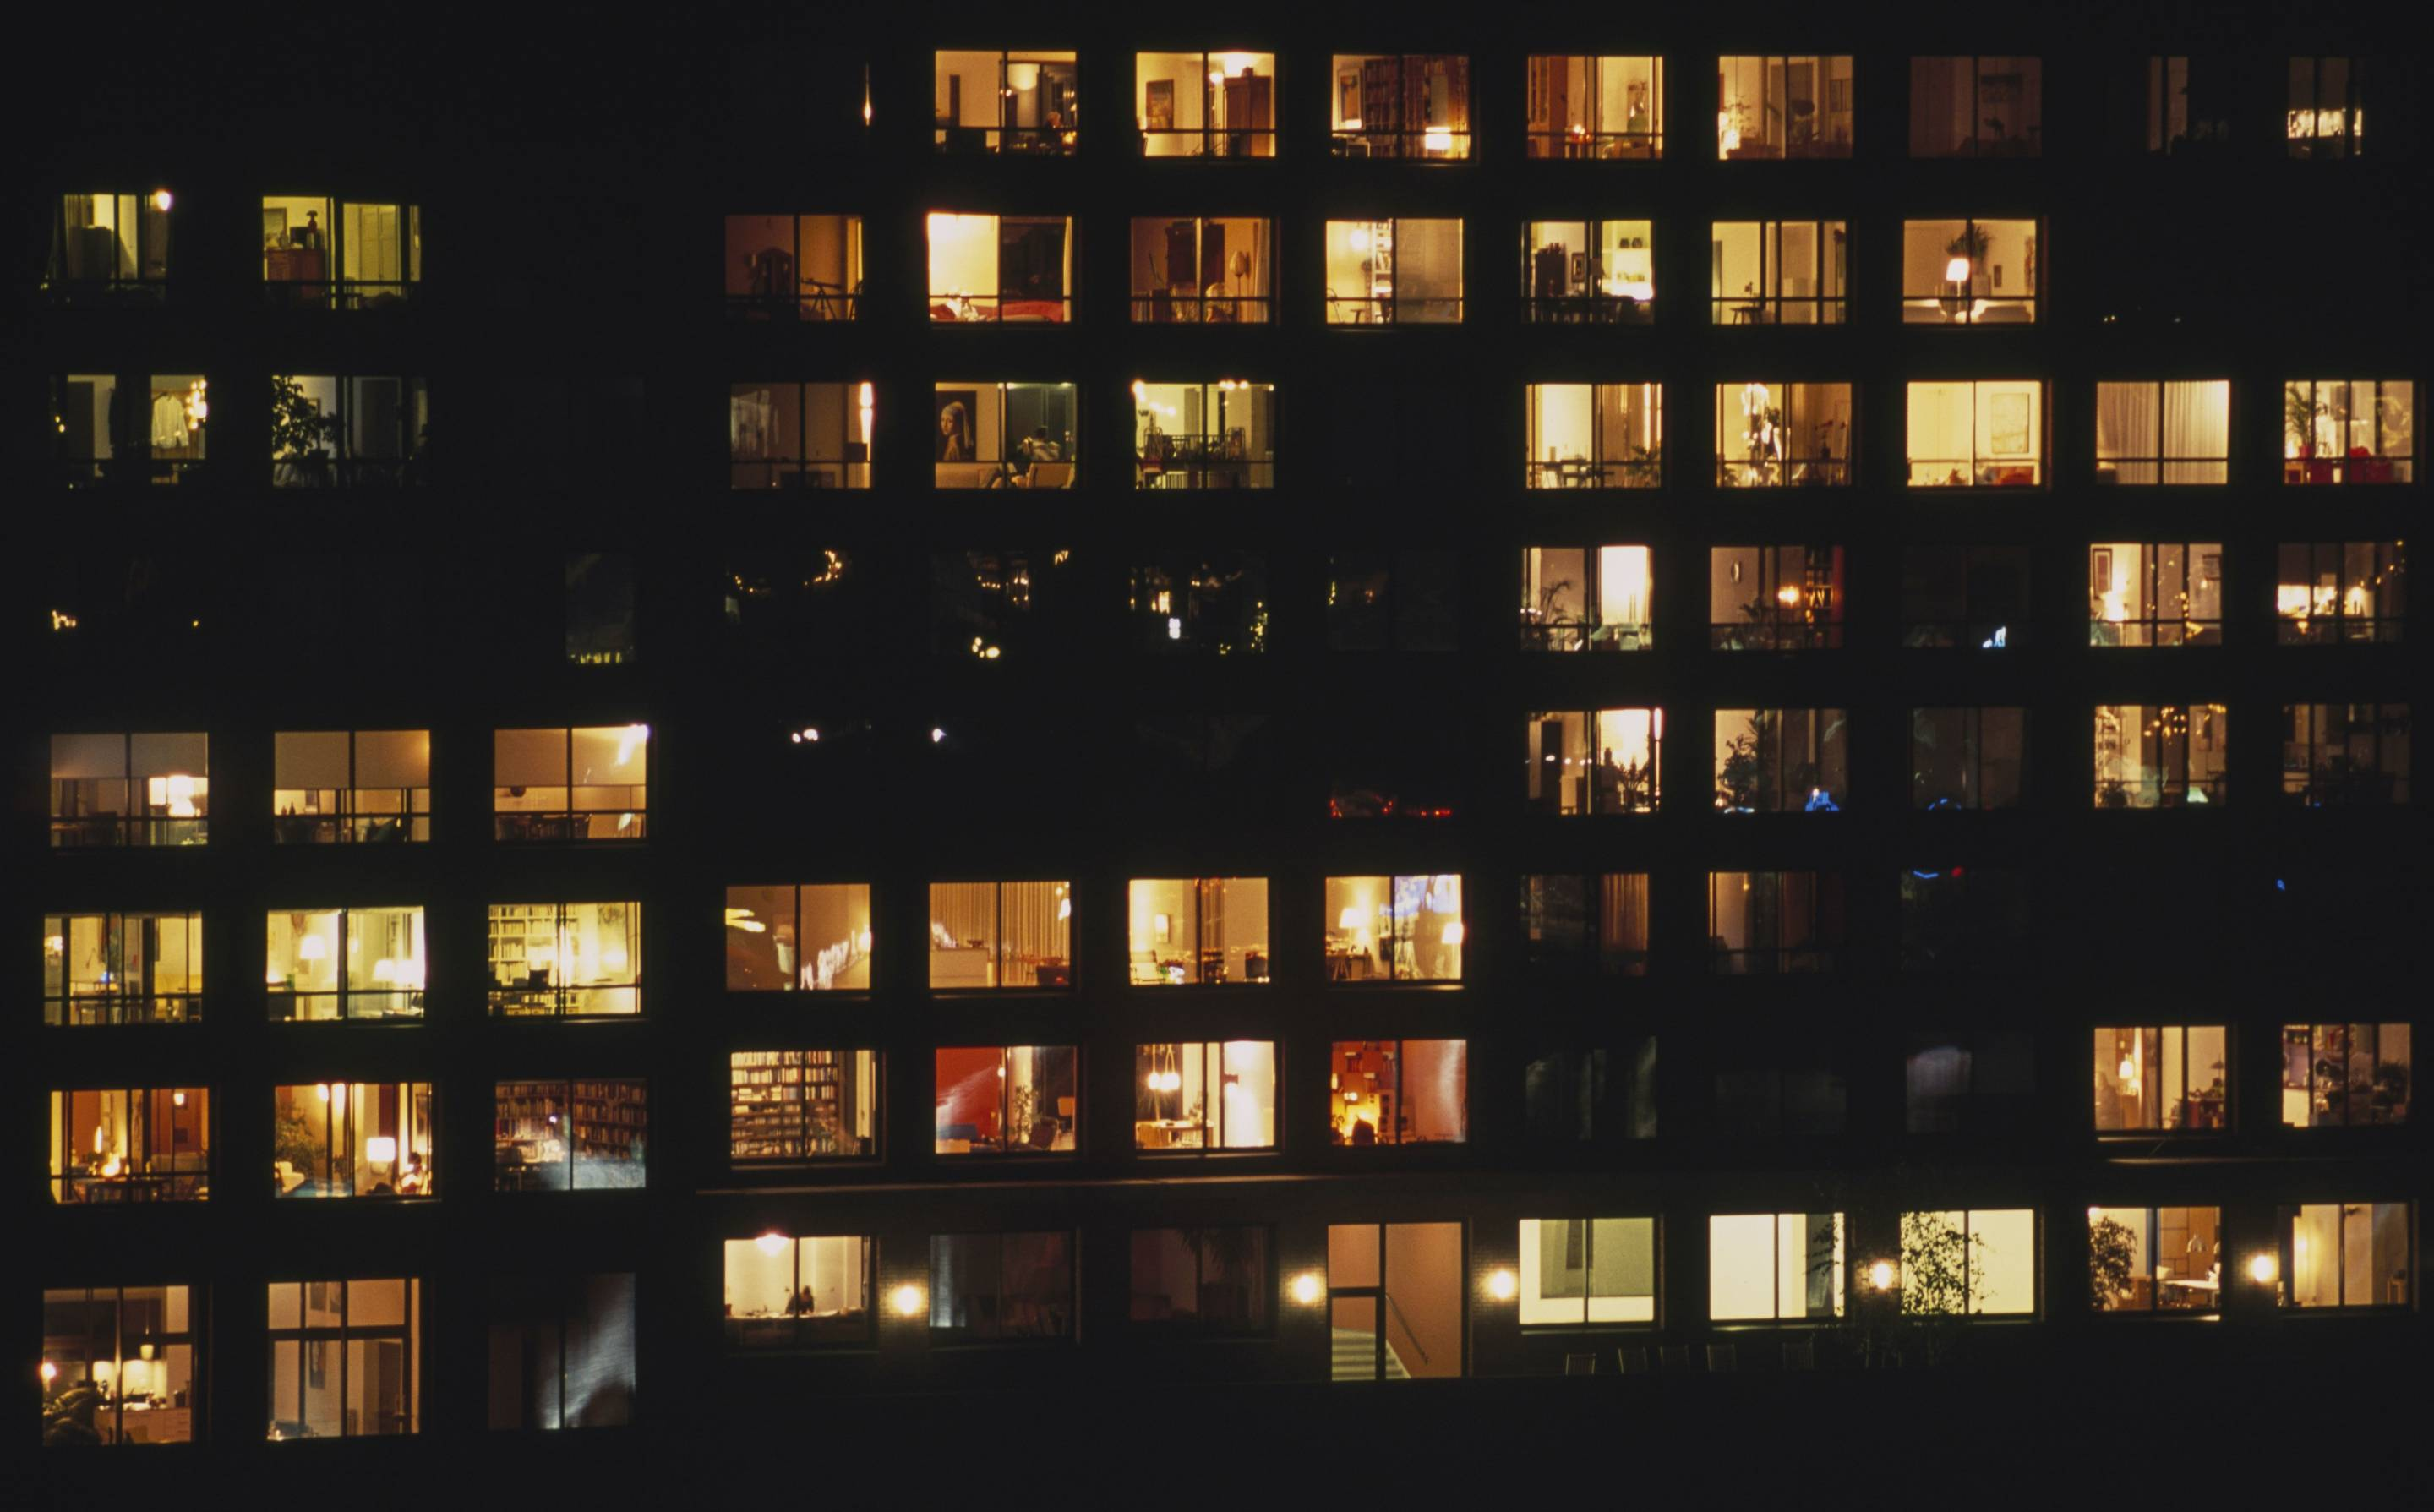 Building in Java-eiland neighborhood, at night, with illuminated windows, Amsterdam, Netherlands